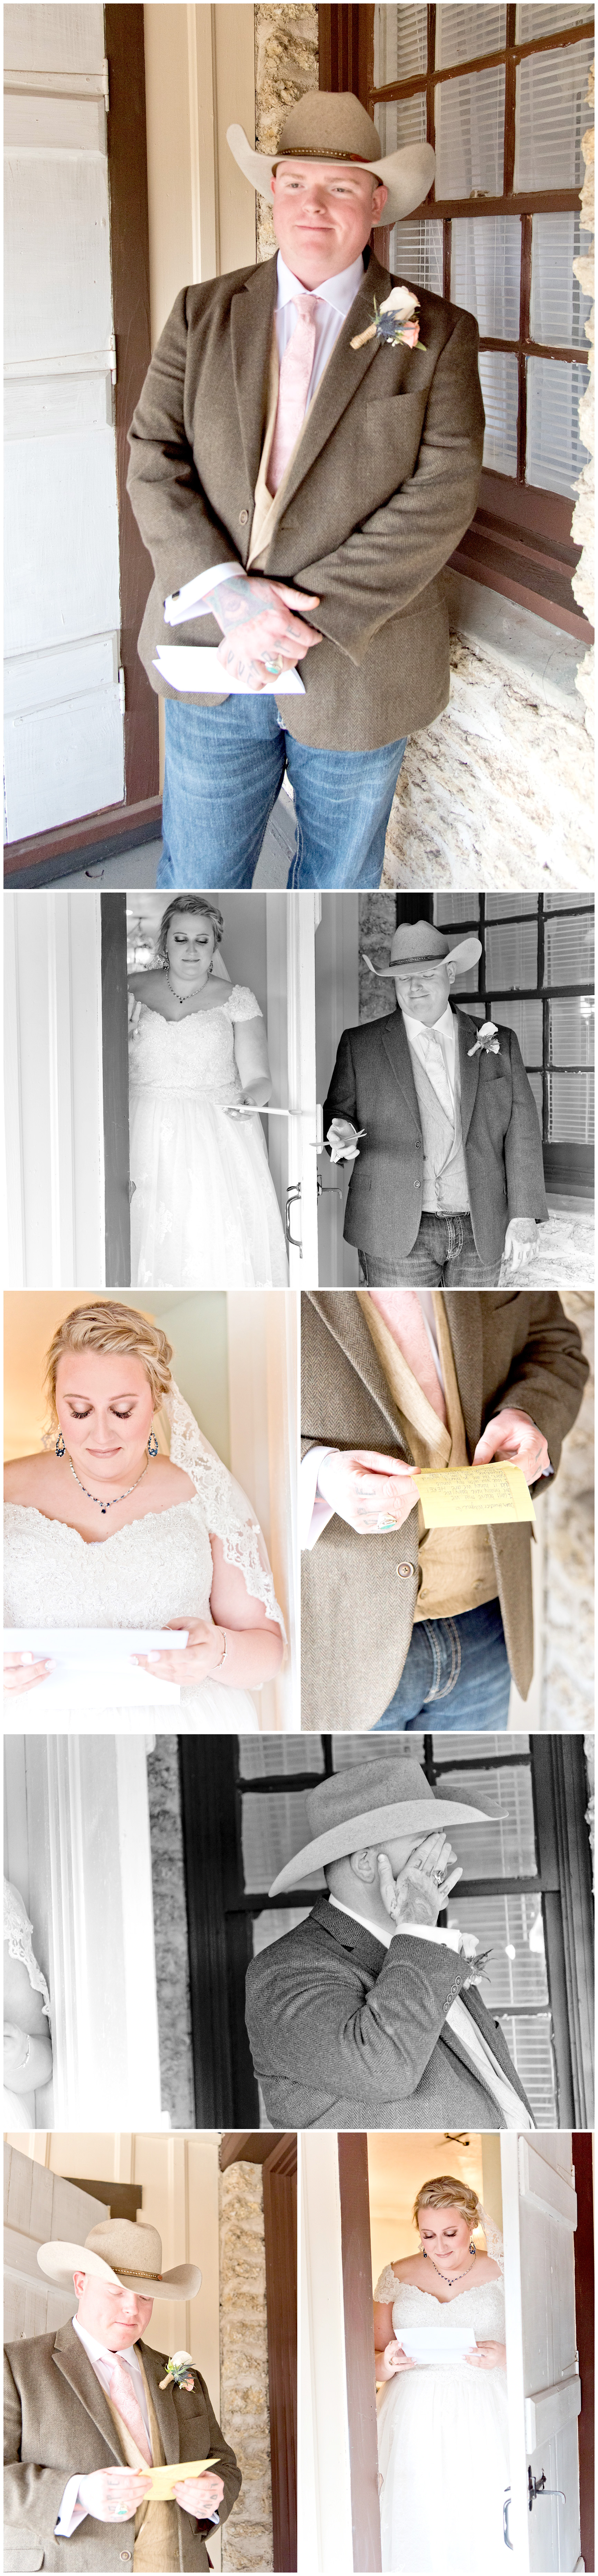 Private Wedding Vows Between Bride and Groom Before Wedding Fort Worth Texas